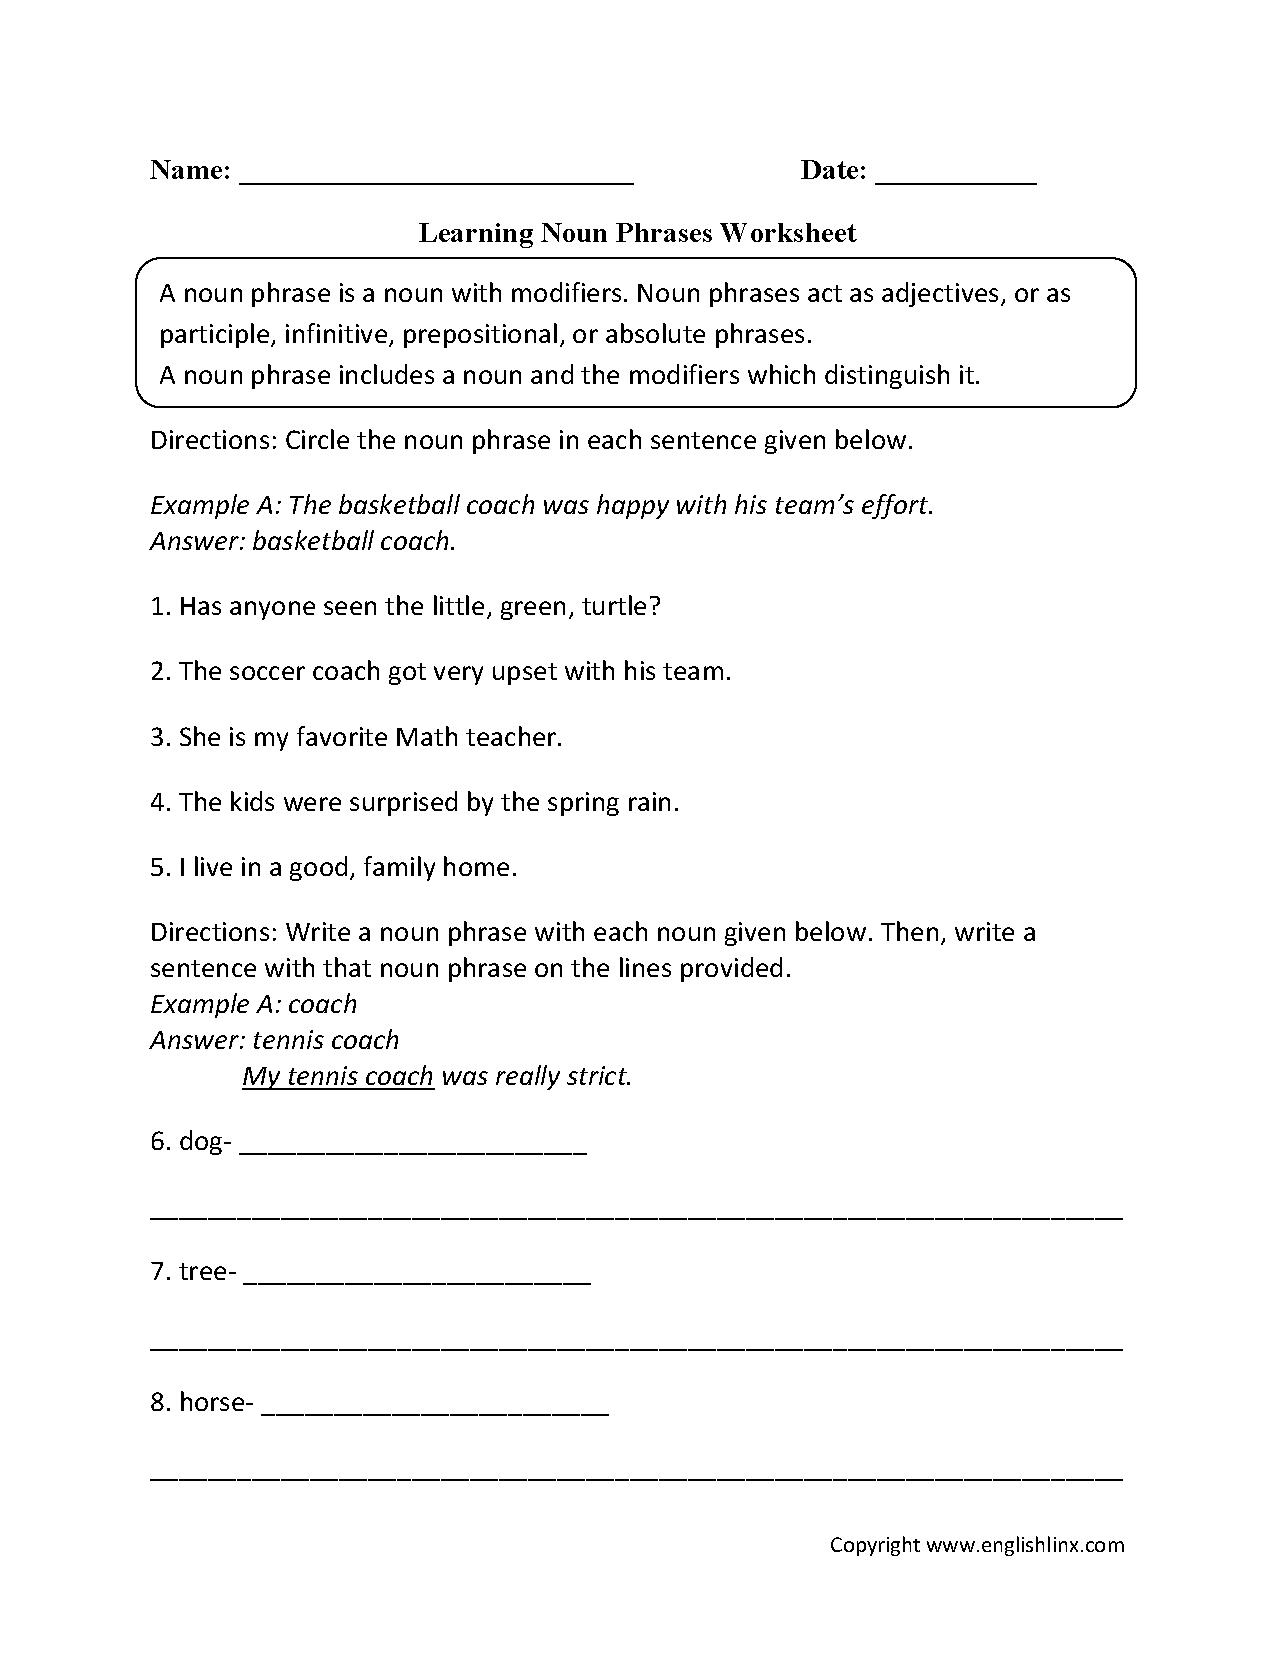 worksheet Nouns And Verbs Worksheets nouns worksheets noun phrases worksheets